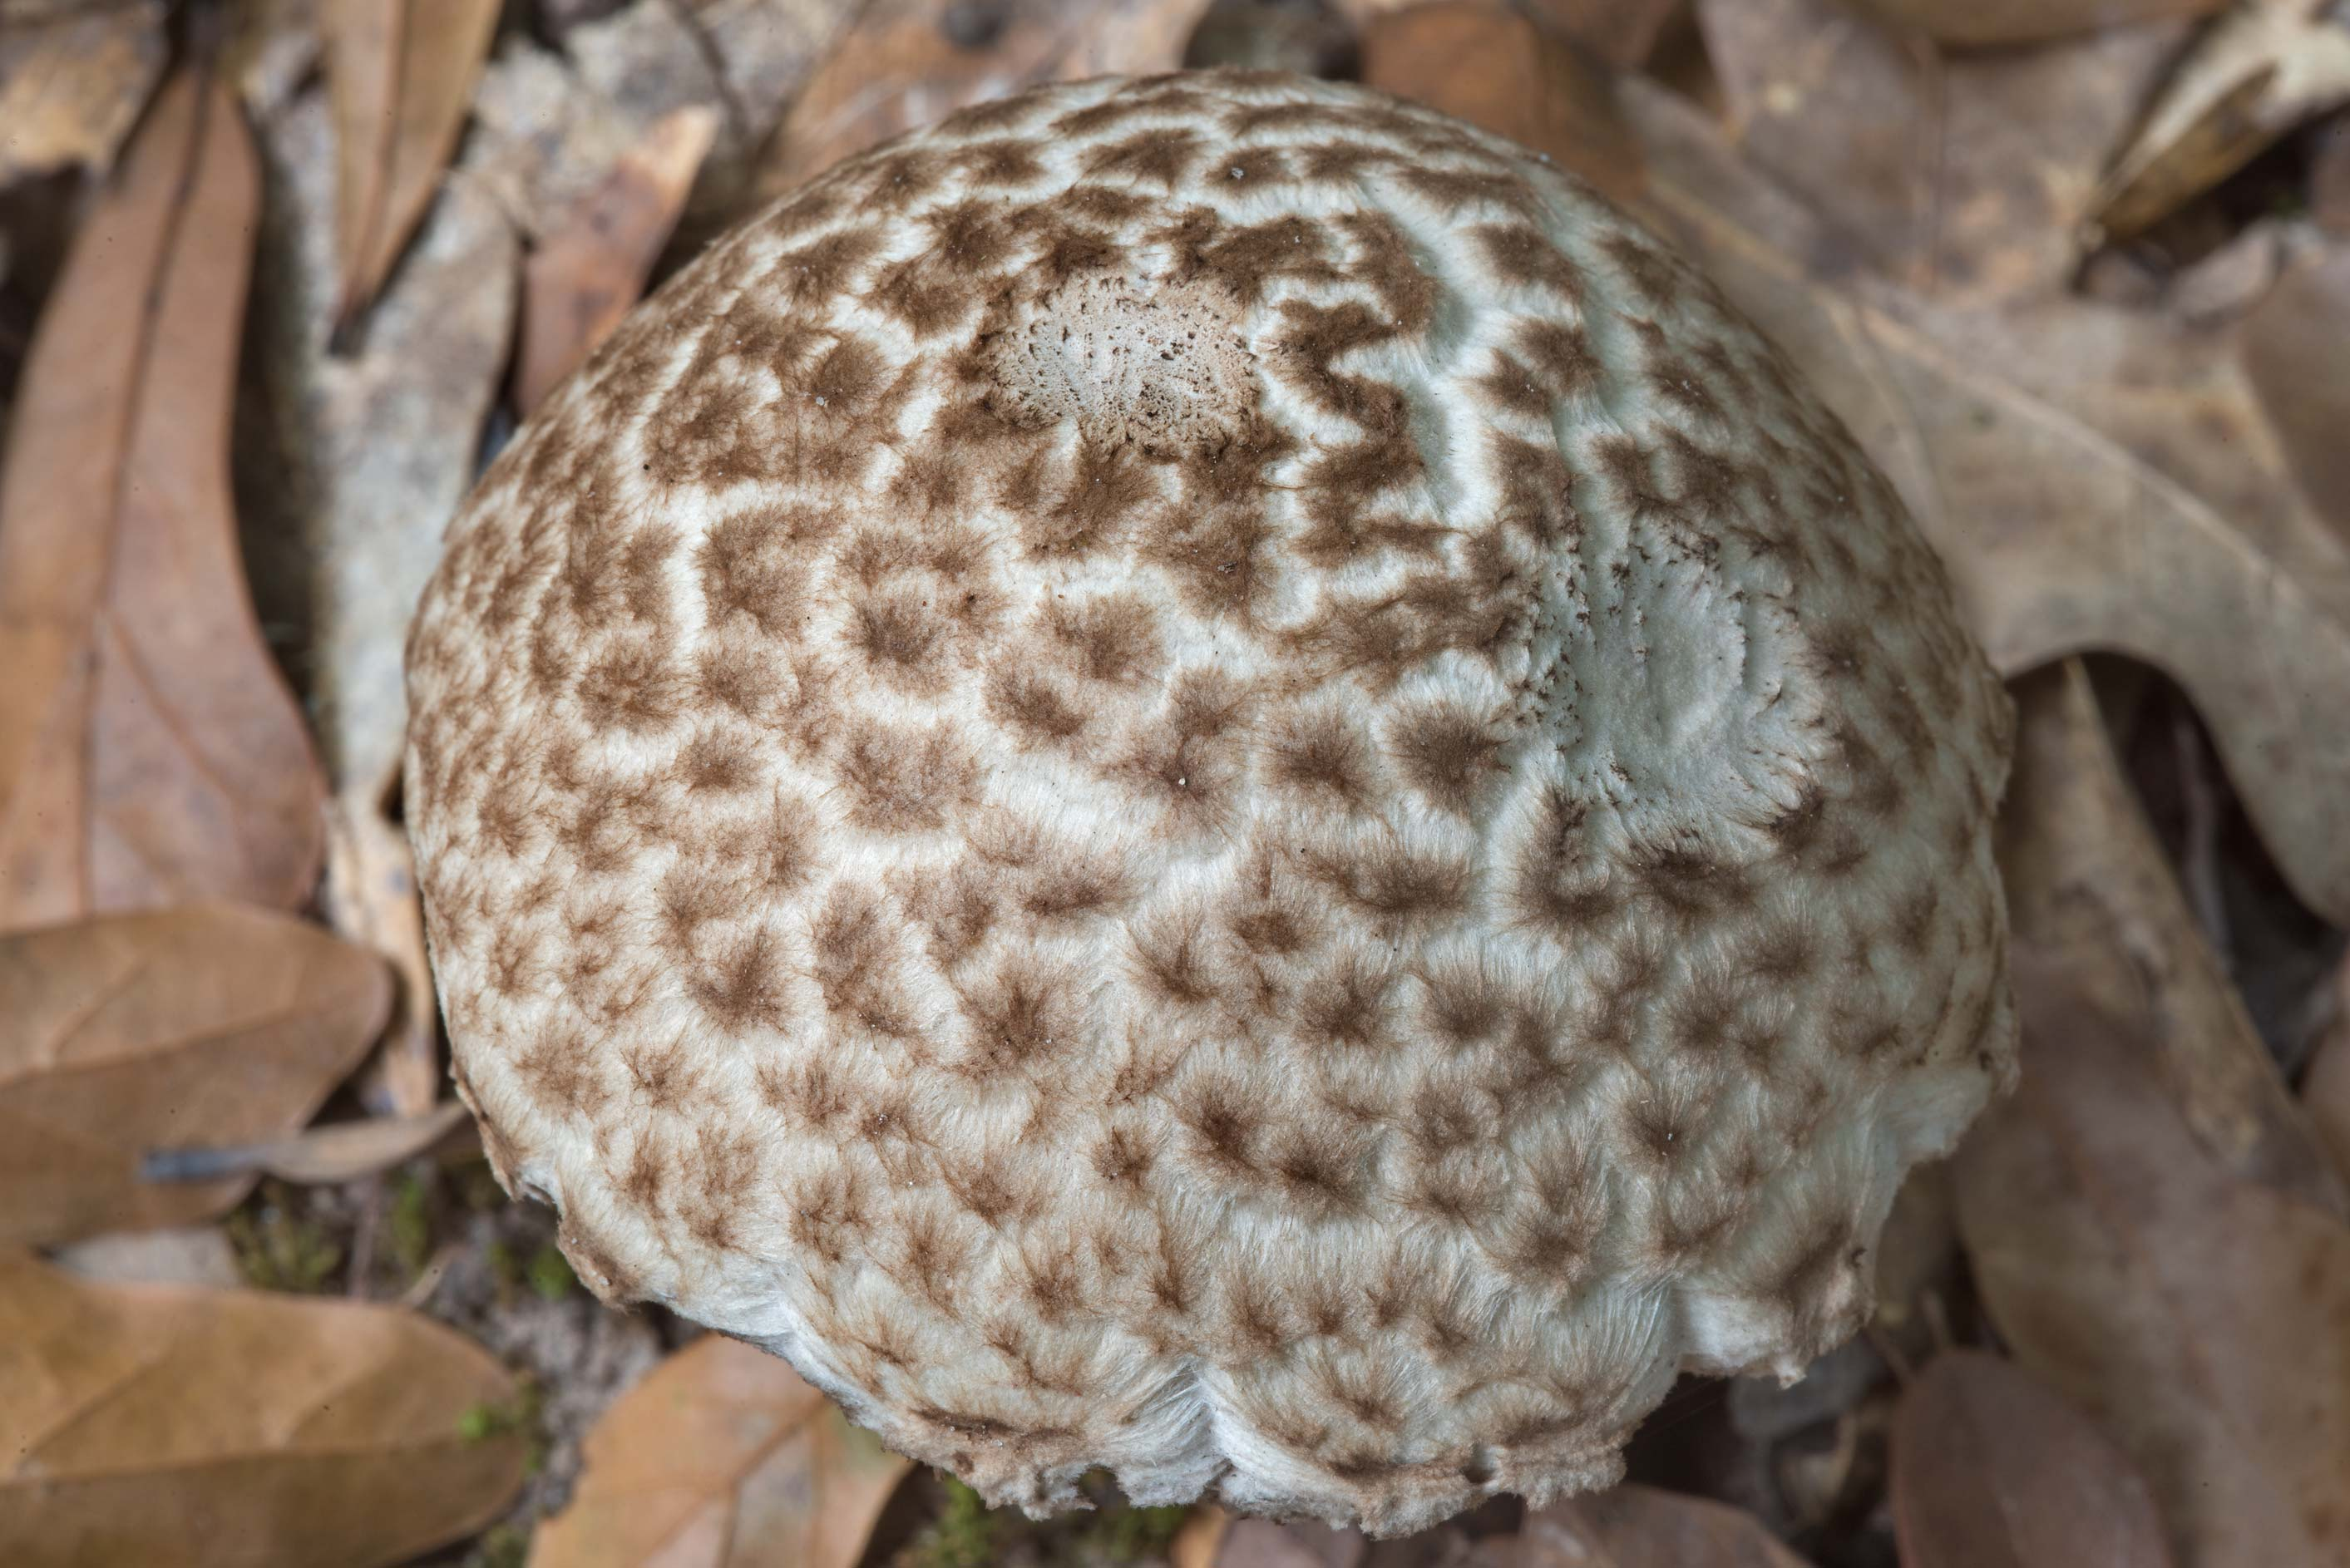 Round scaly cap of bolete mushroom Strobilomyces...Creek Park. College Station, Texas